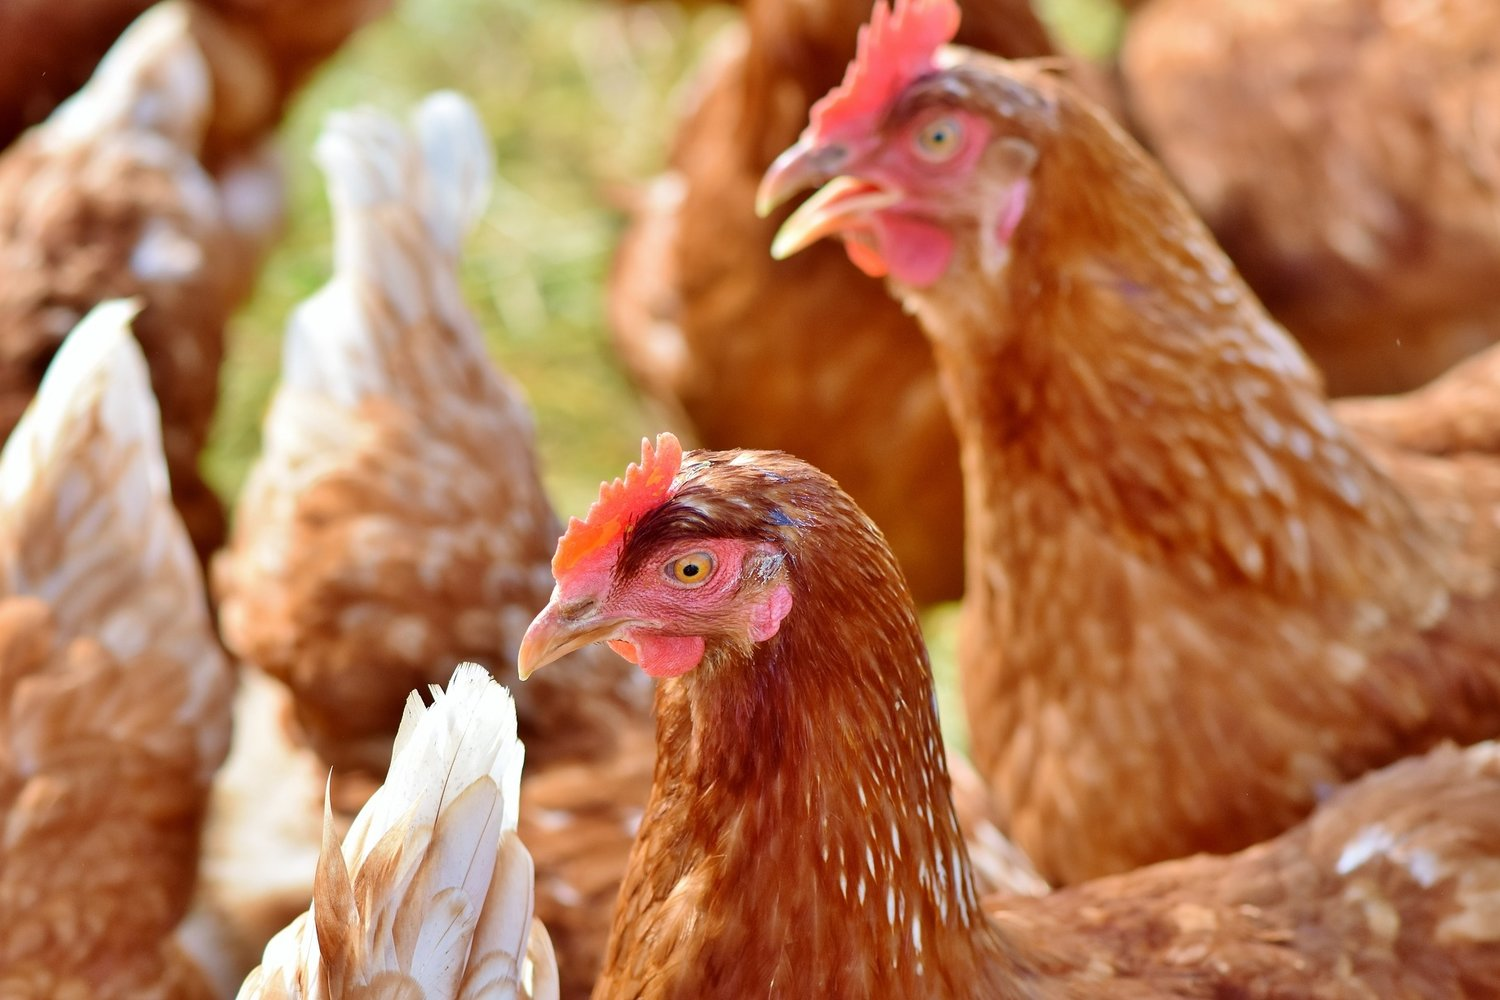 How Mobile Agriculture Forms Improve Communication & Animal Welfare